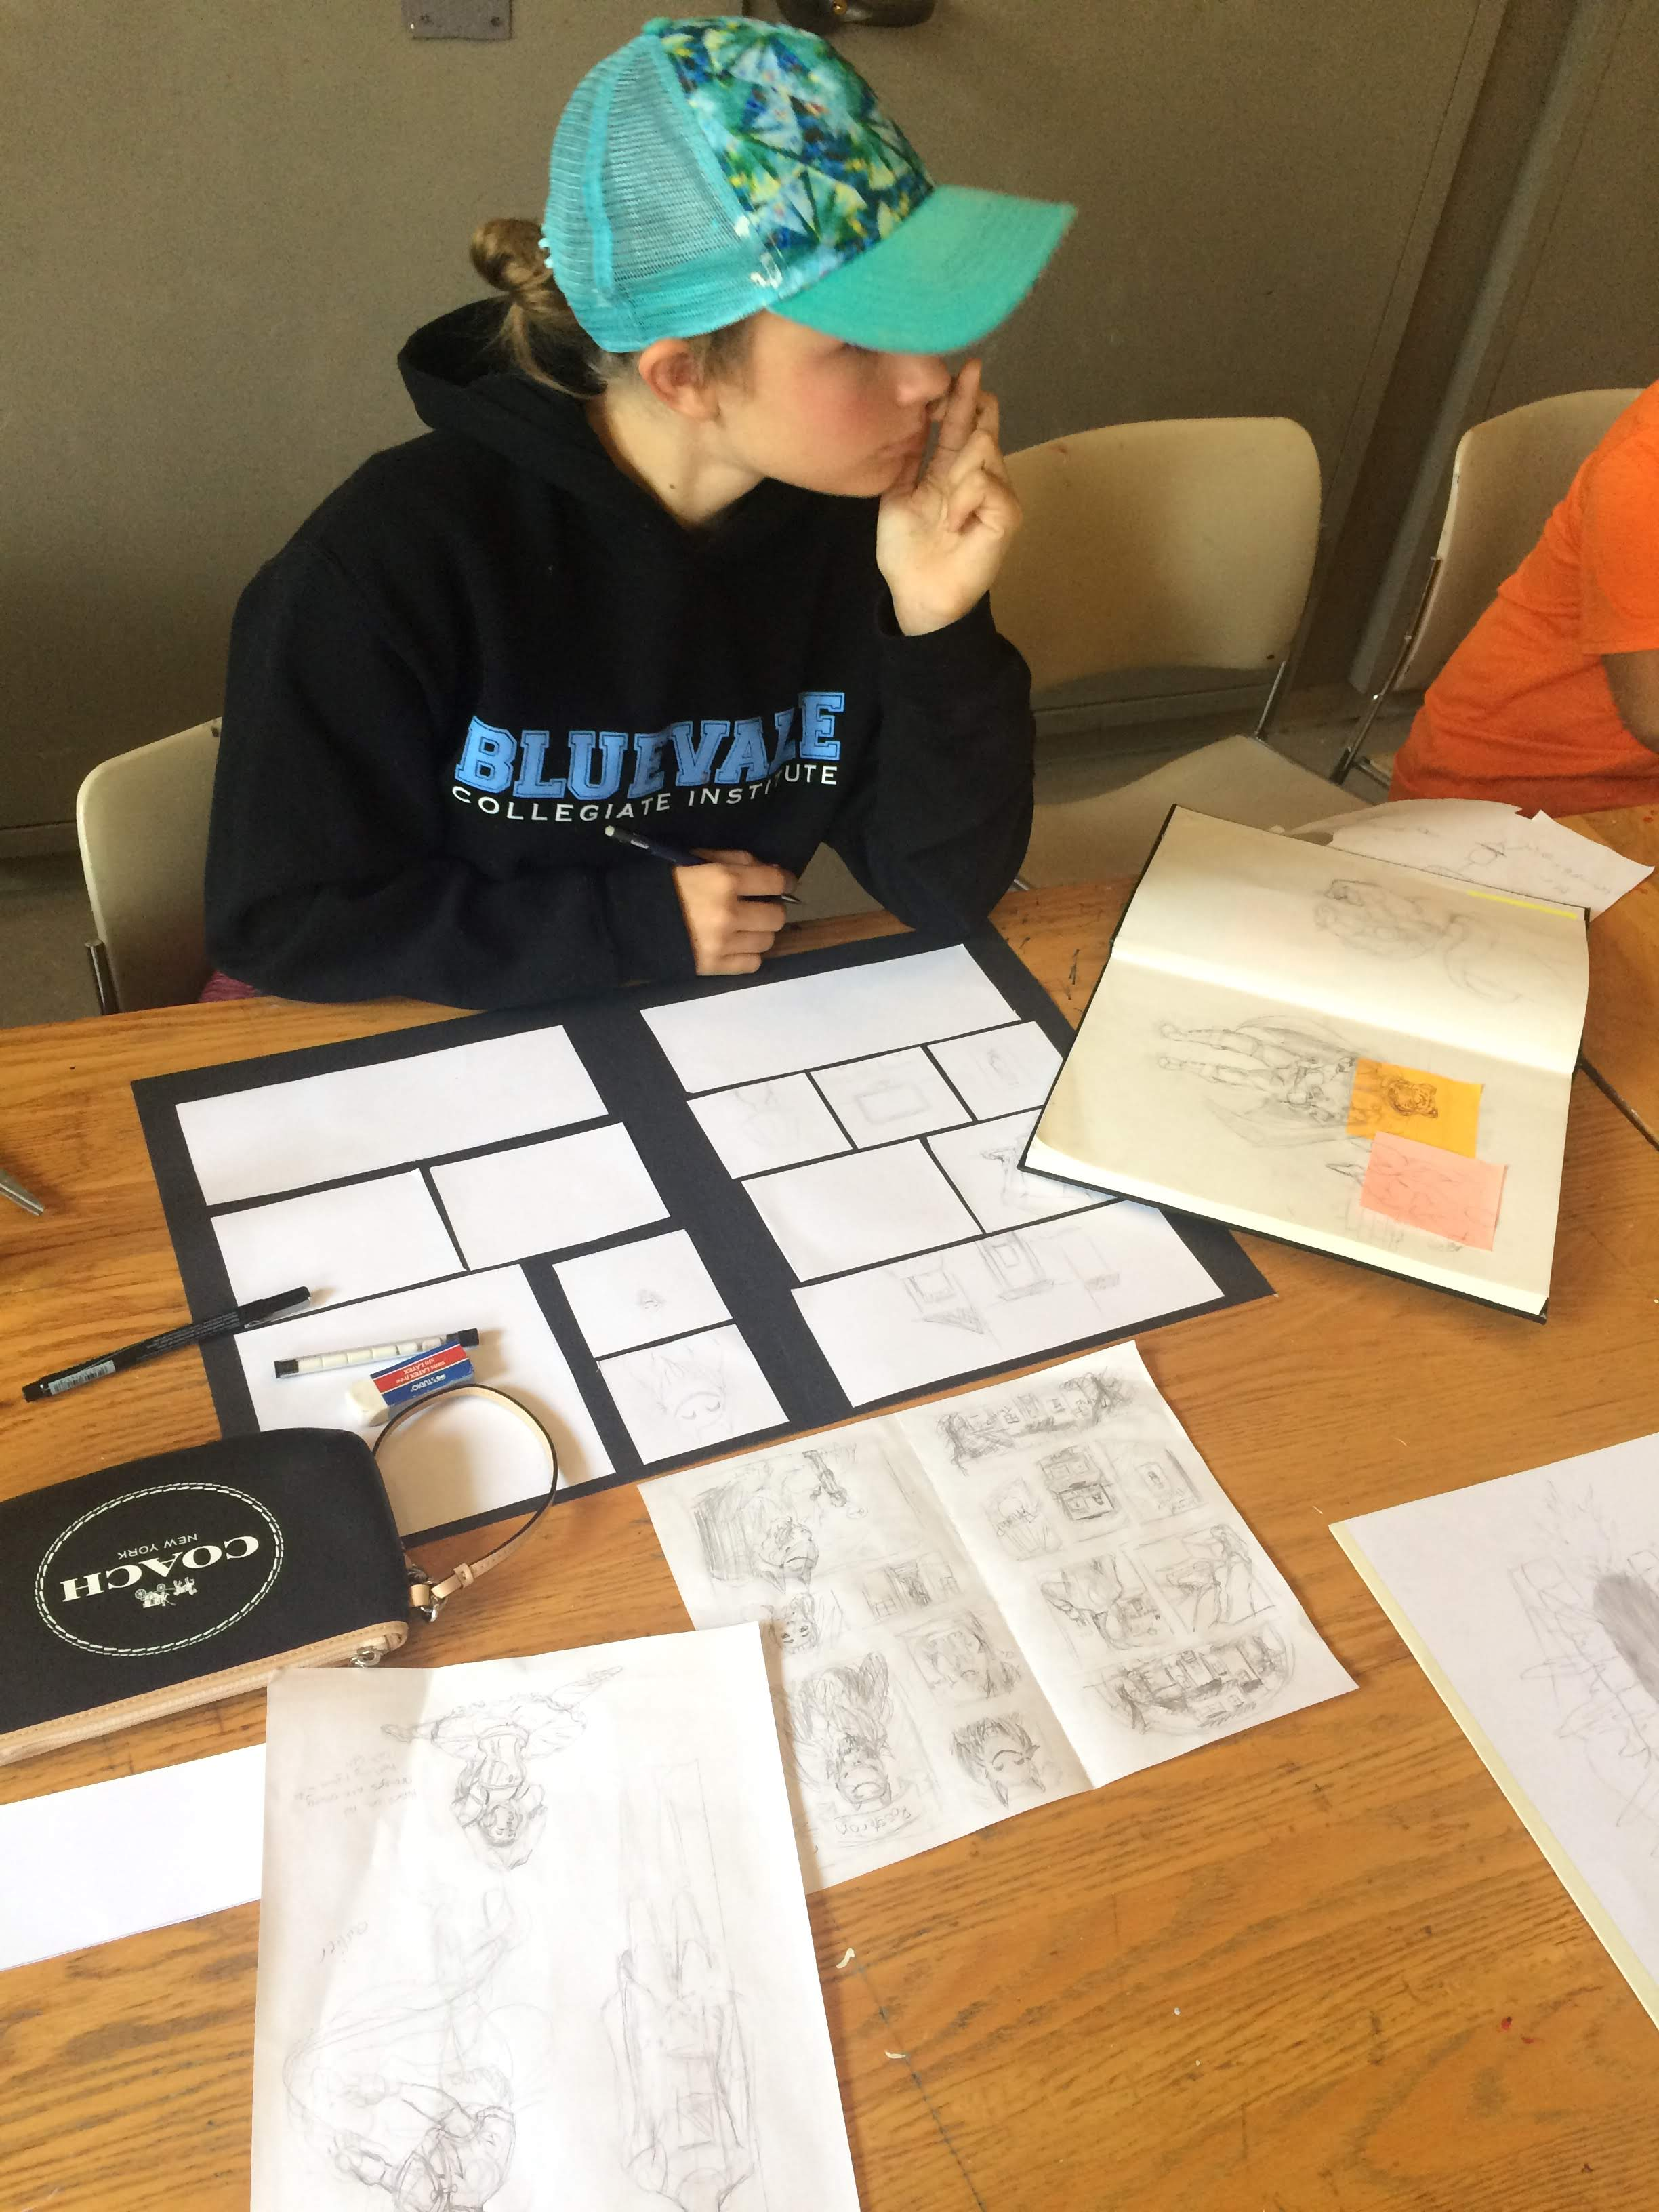 A young girl in a black sweatshirt and teal baseball cap sits at a desk before a series of sketches, notebooks and storyboards